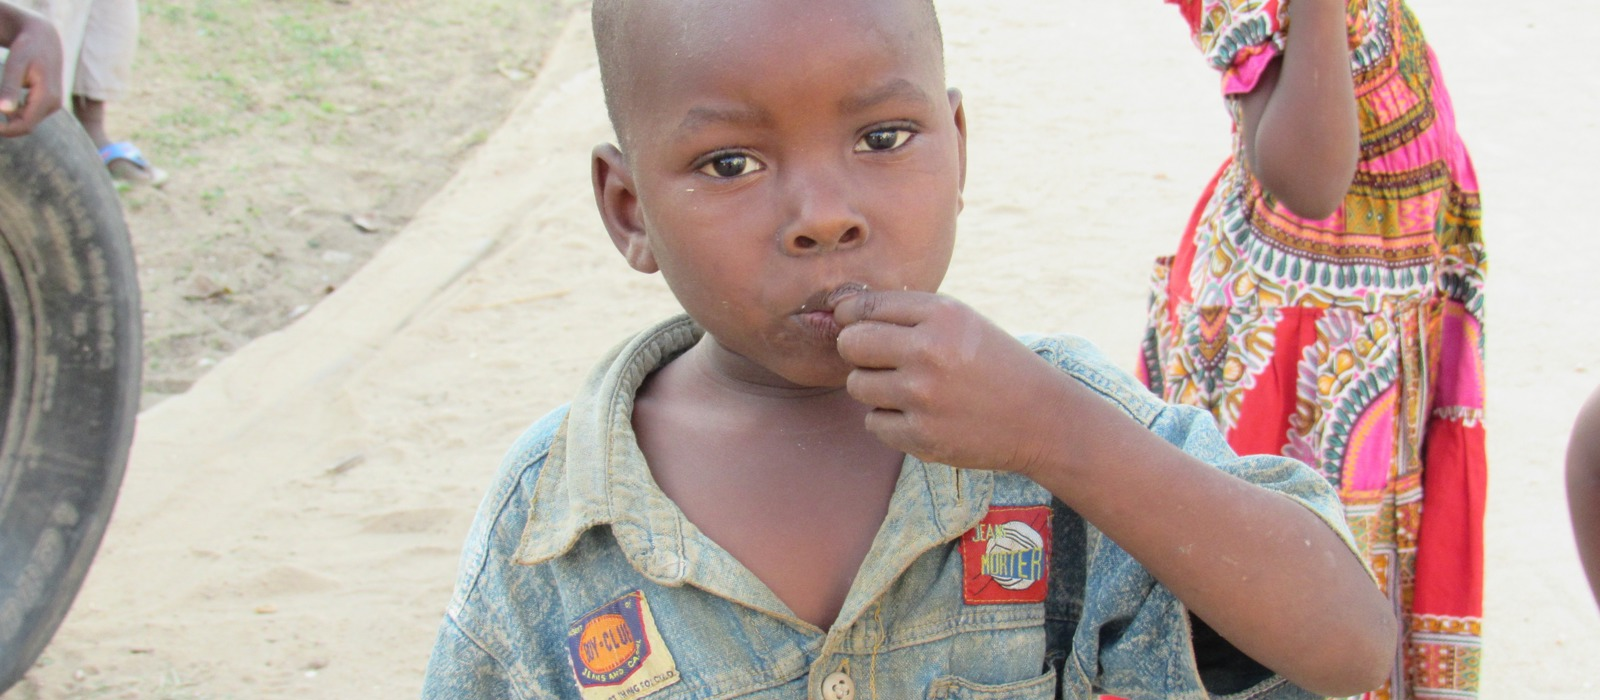 child in Tanzania